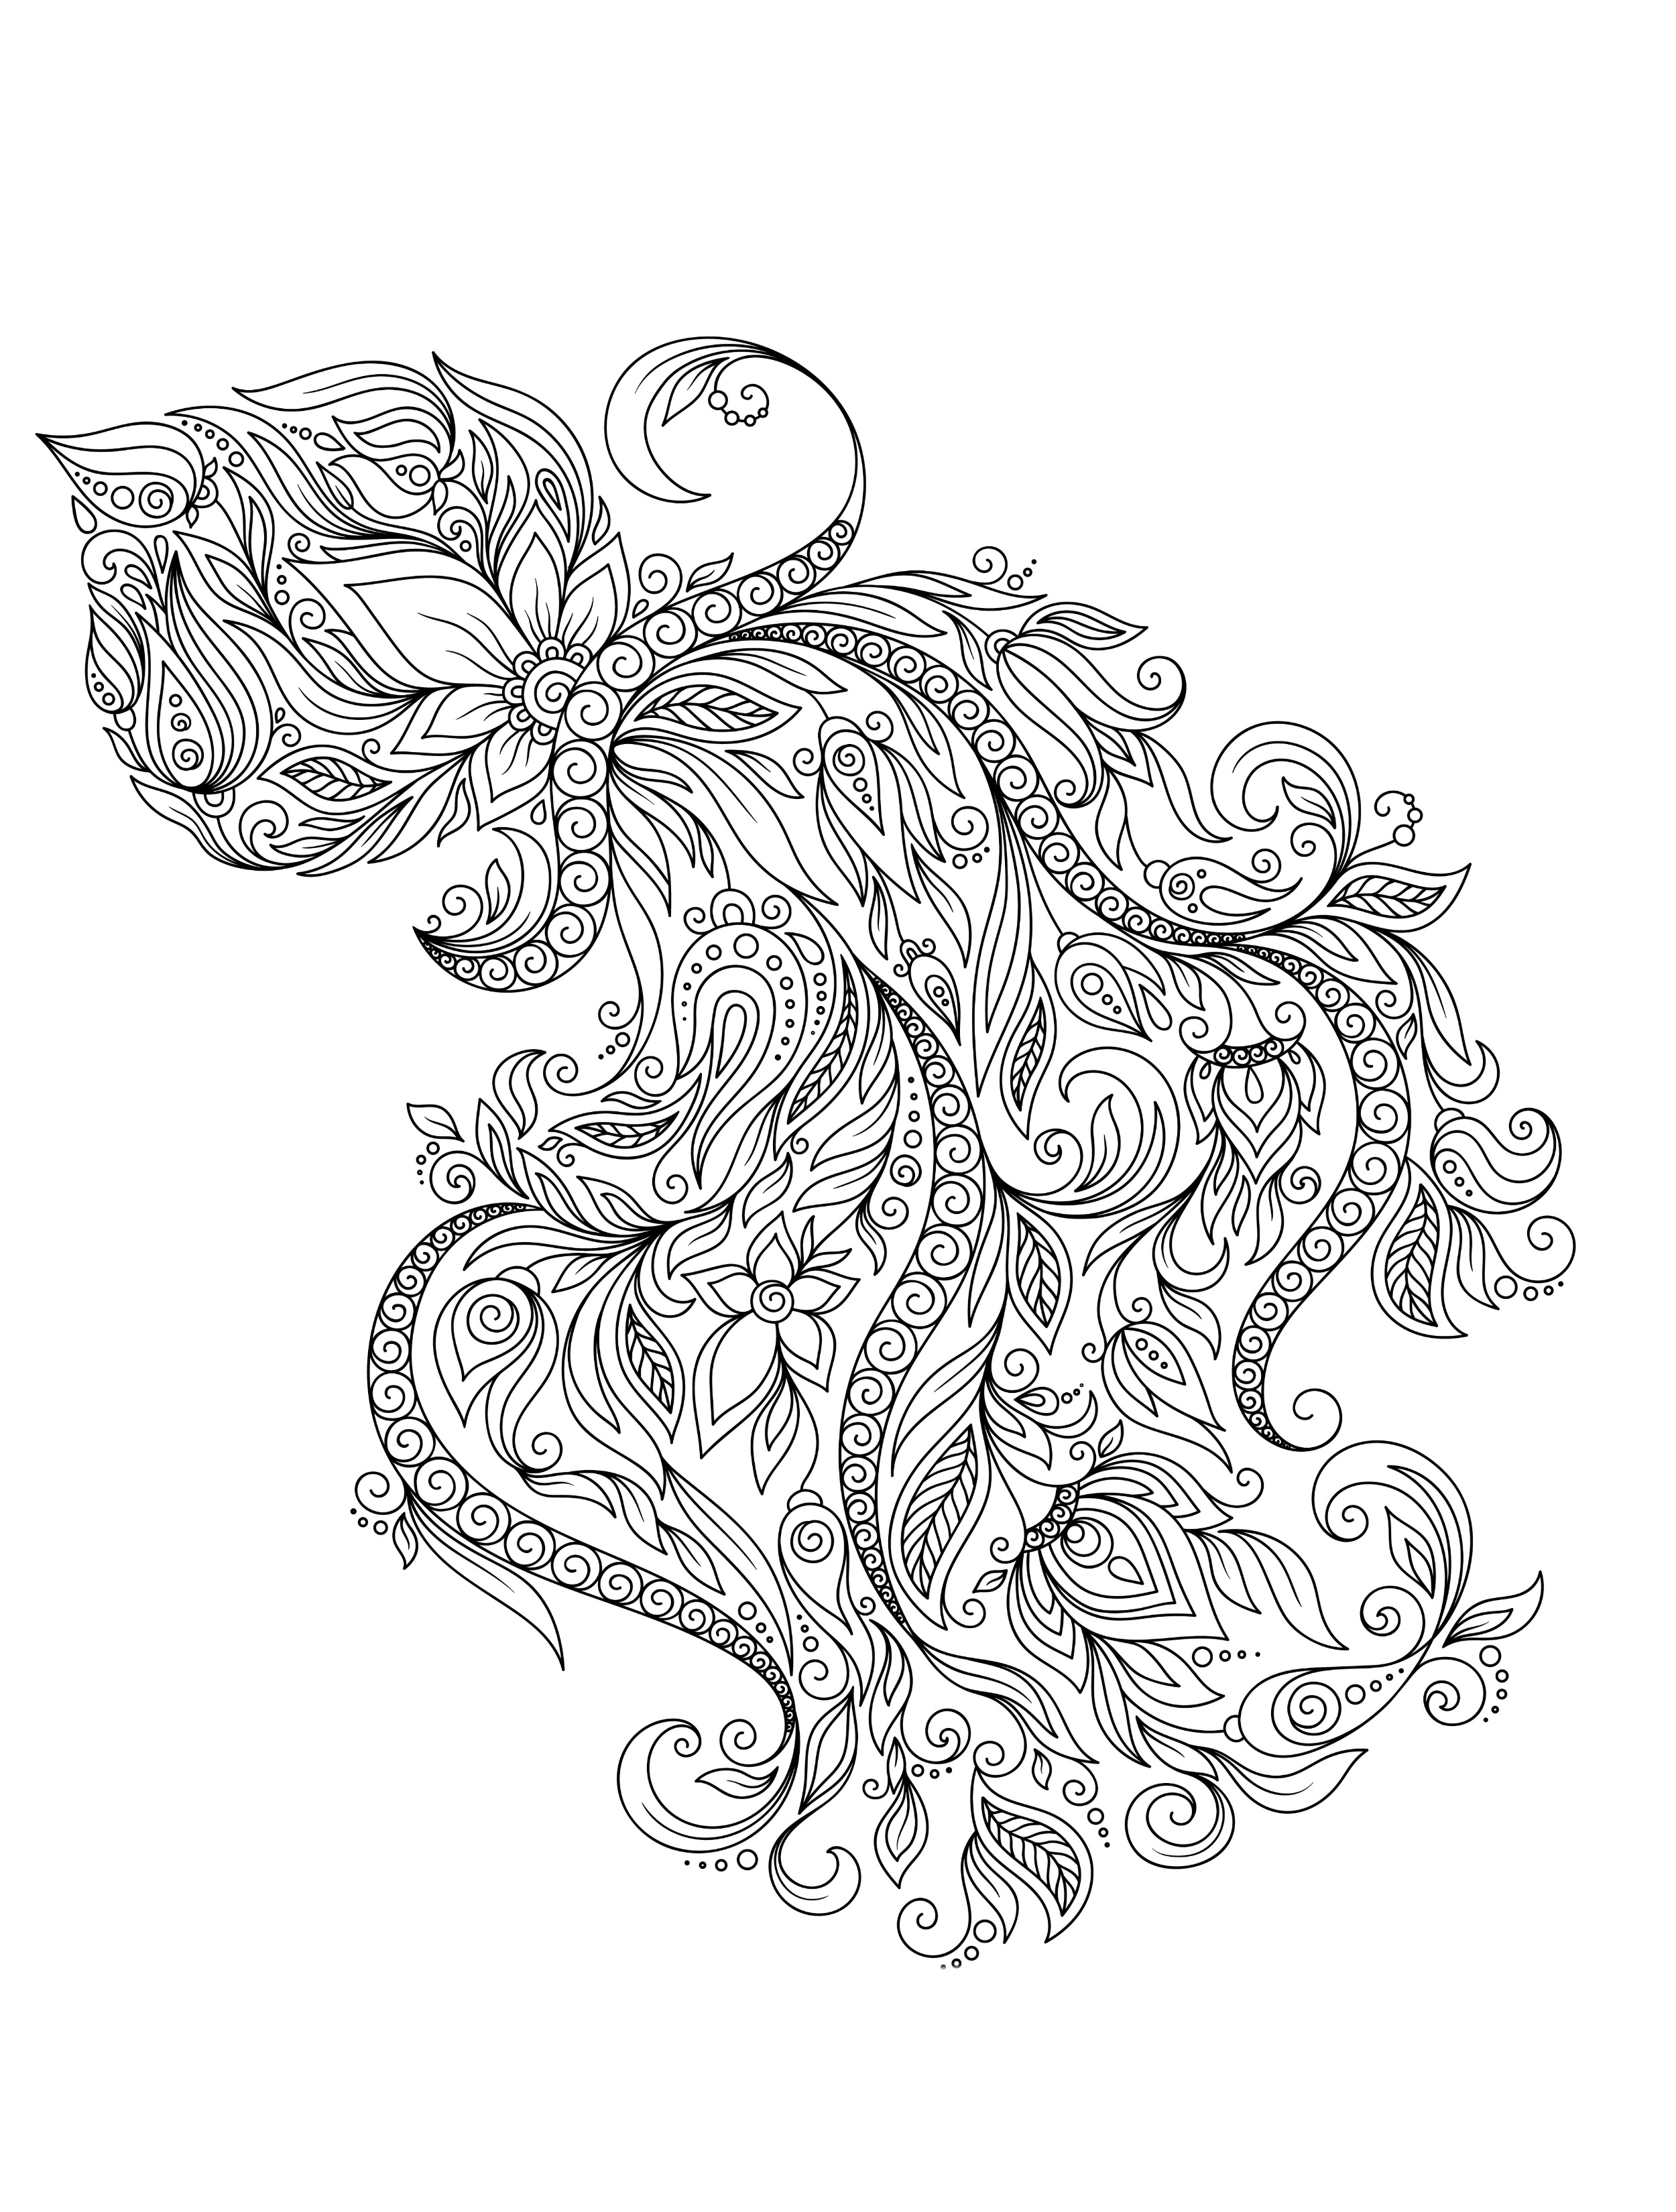 Coloring Pages to Color Online for Free for Adults - 23 Free Printable Insect & Animal Adult Coloring Pages